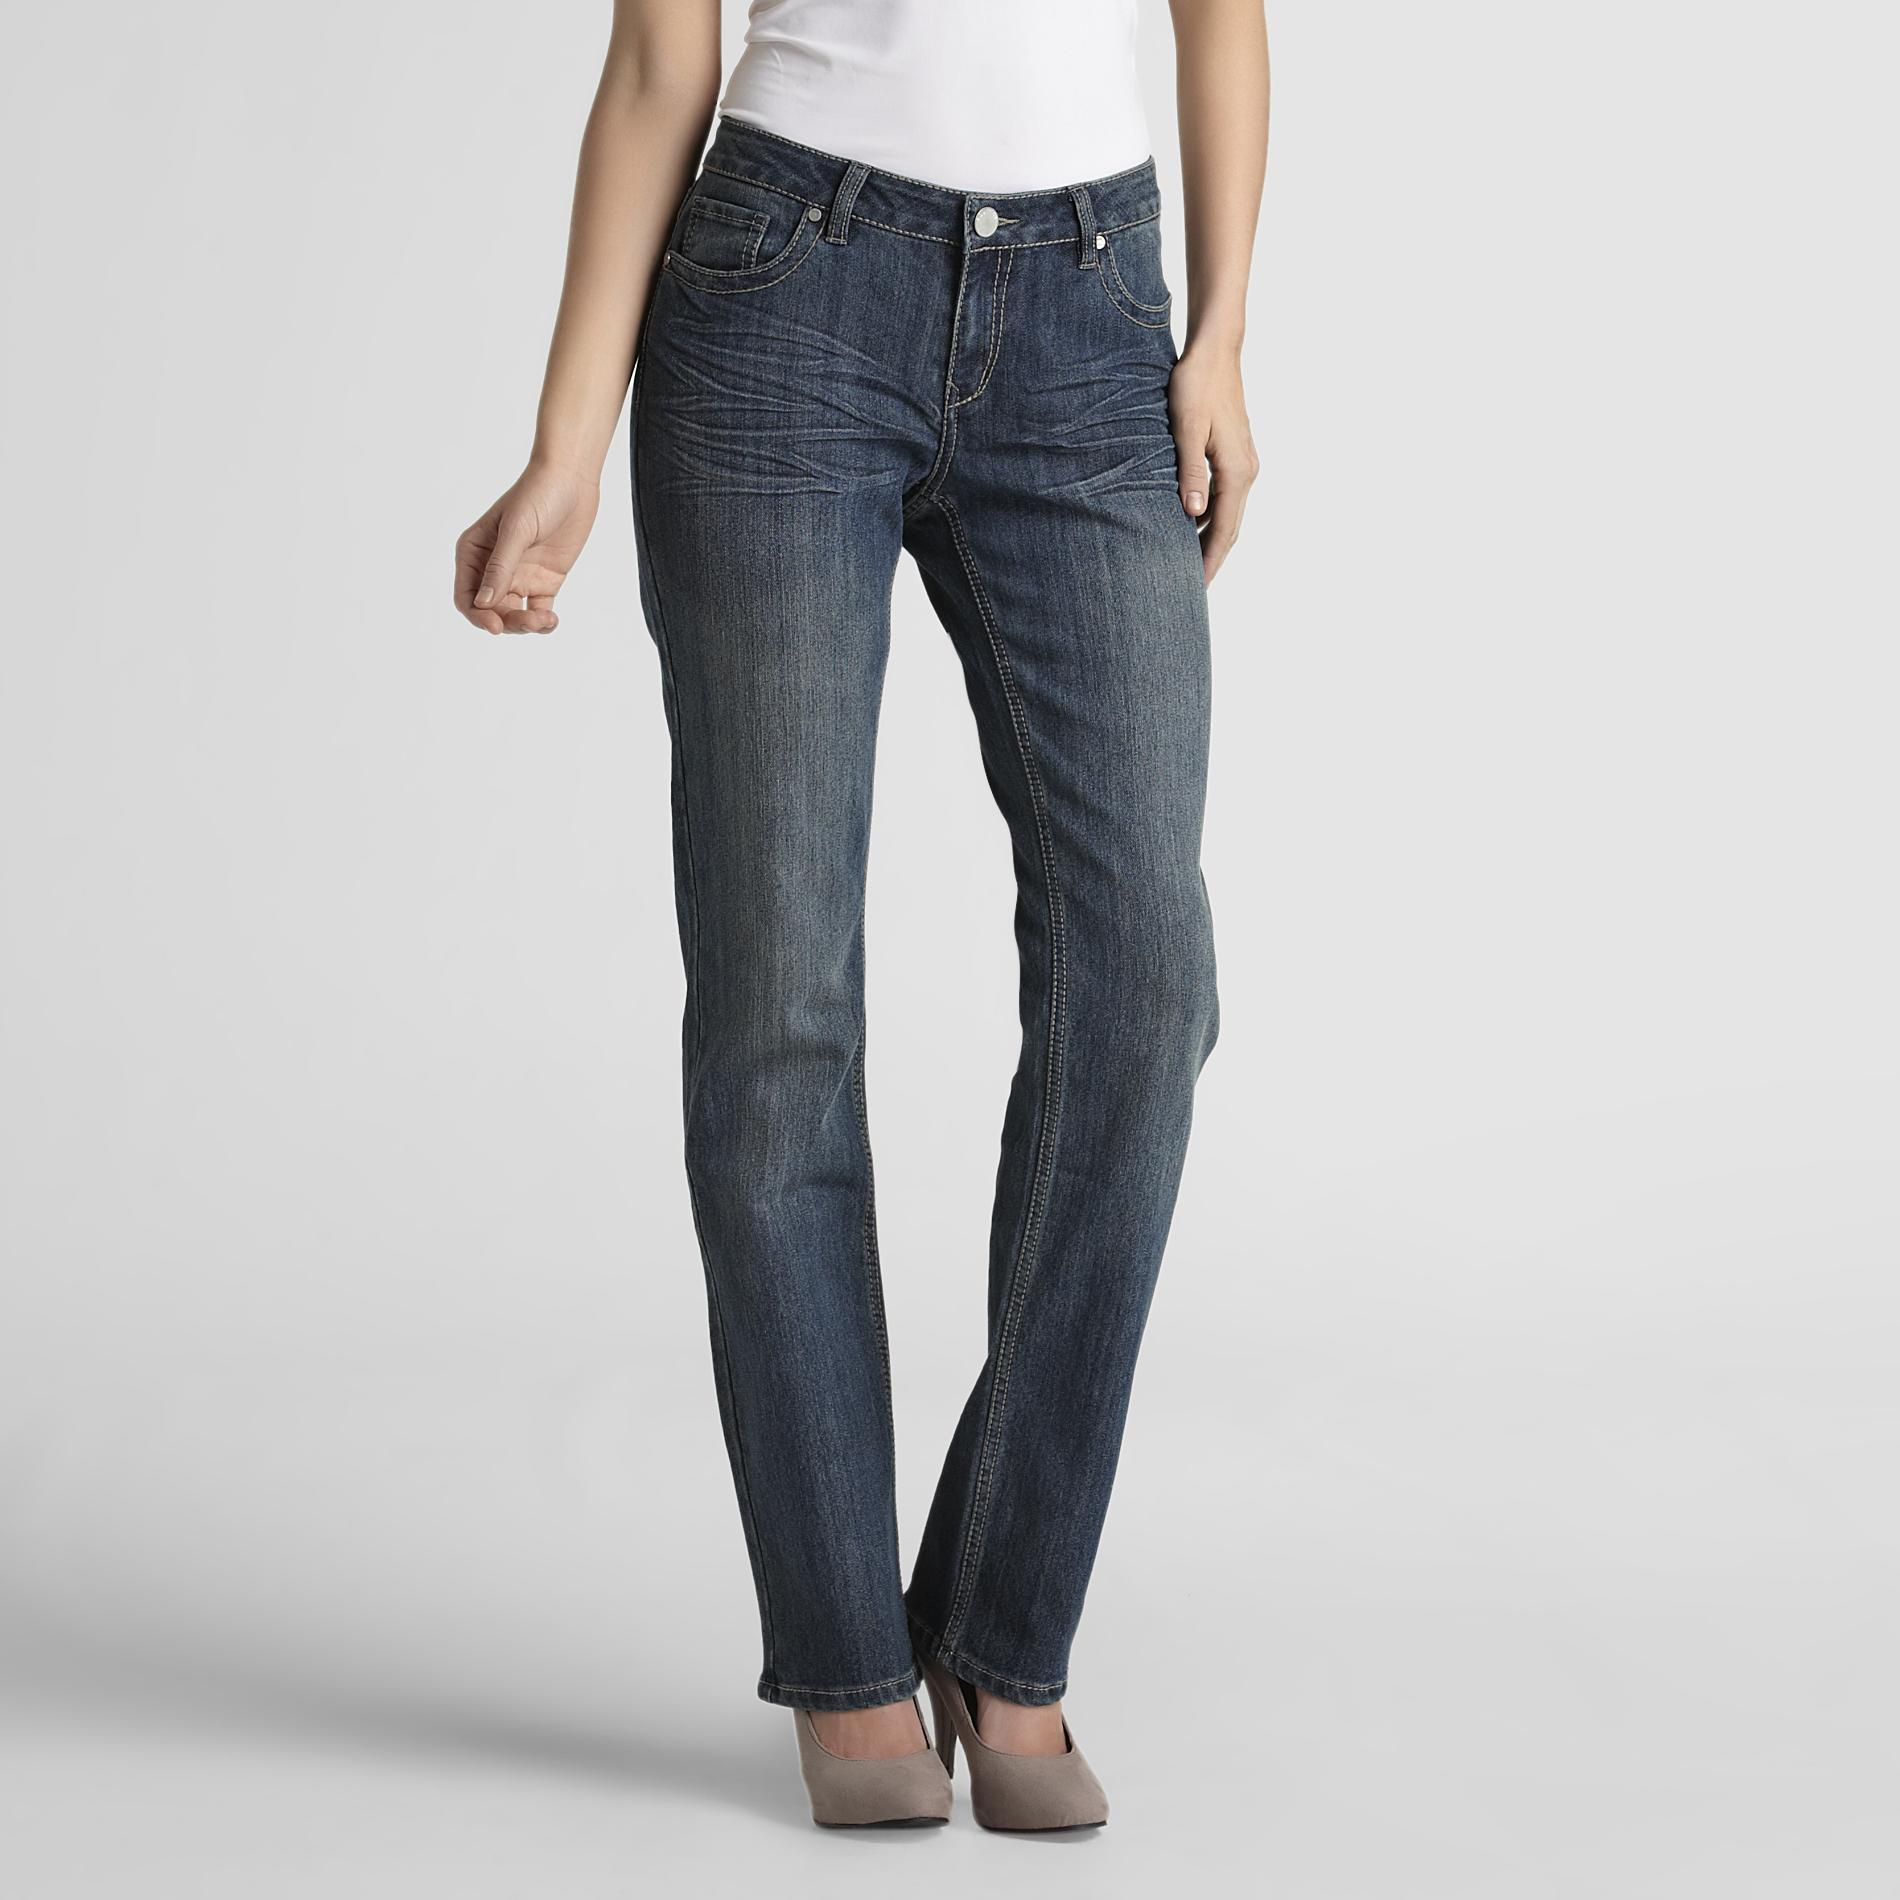 Route 66 Women's Straight Leg Jeans at Kmart.com